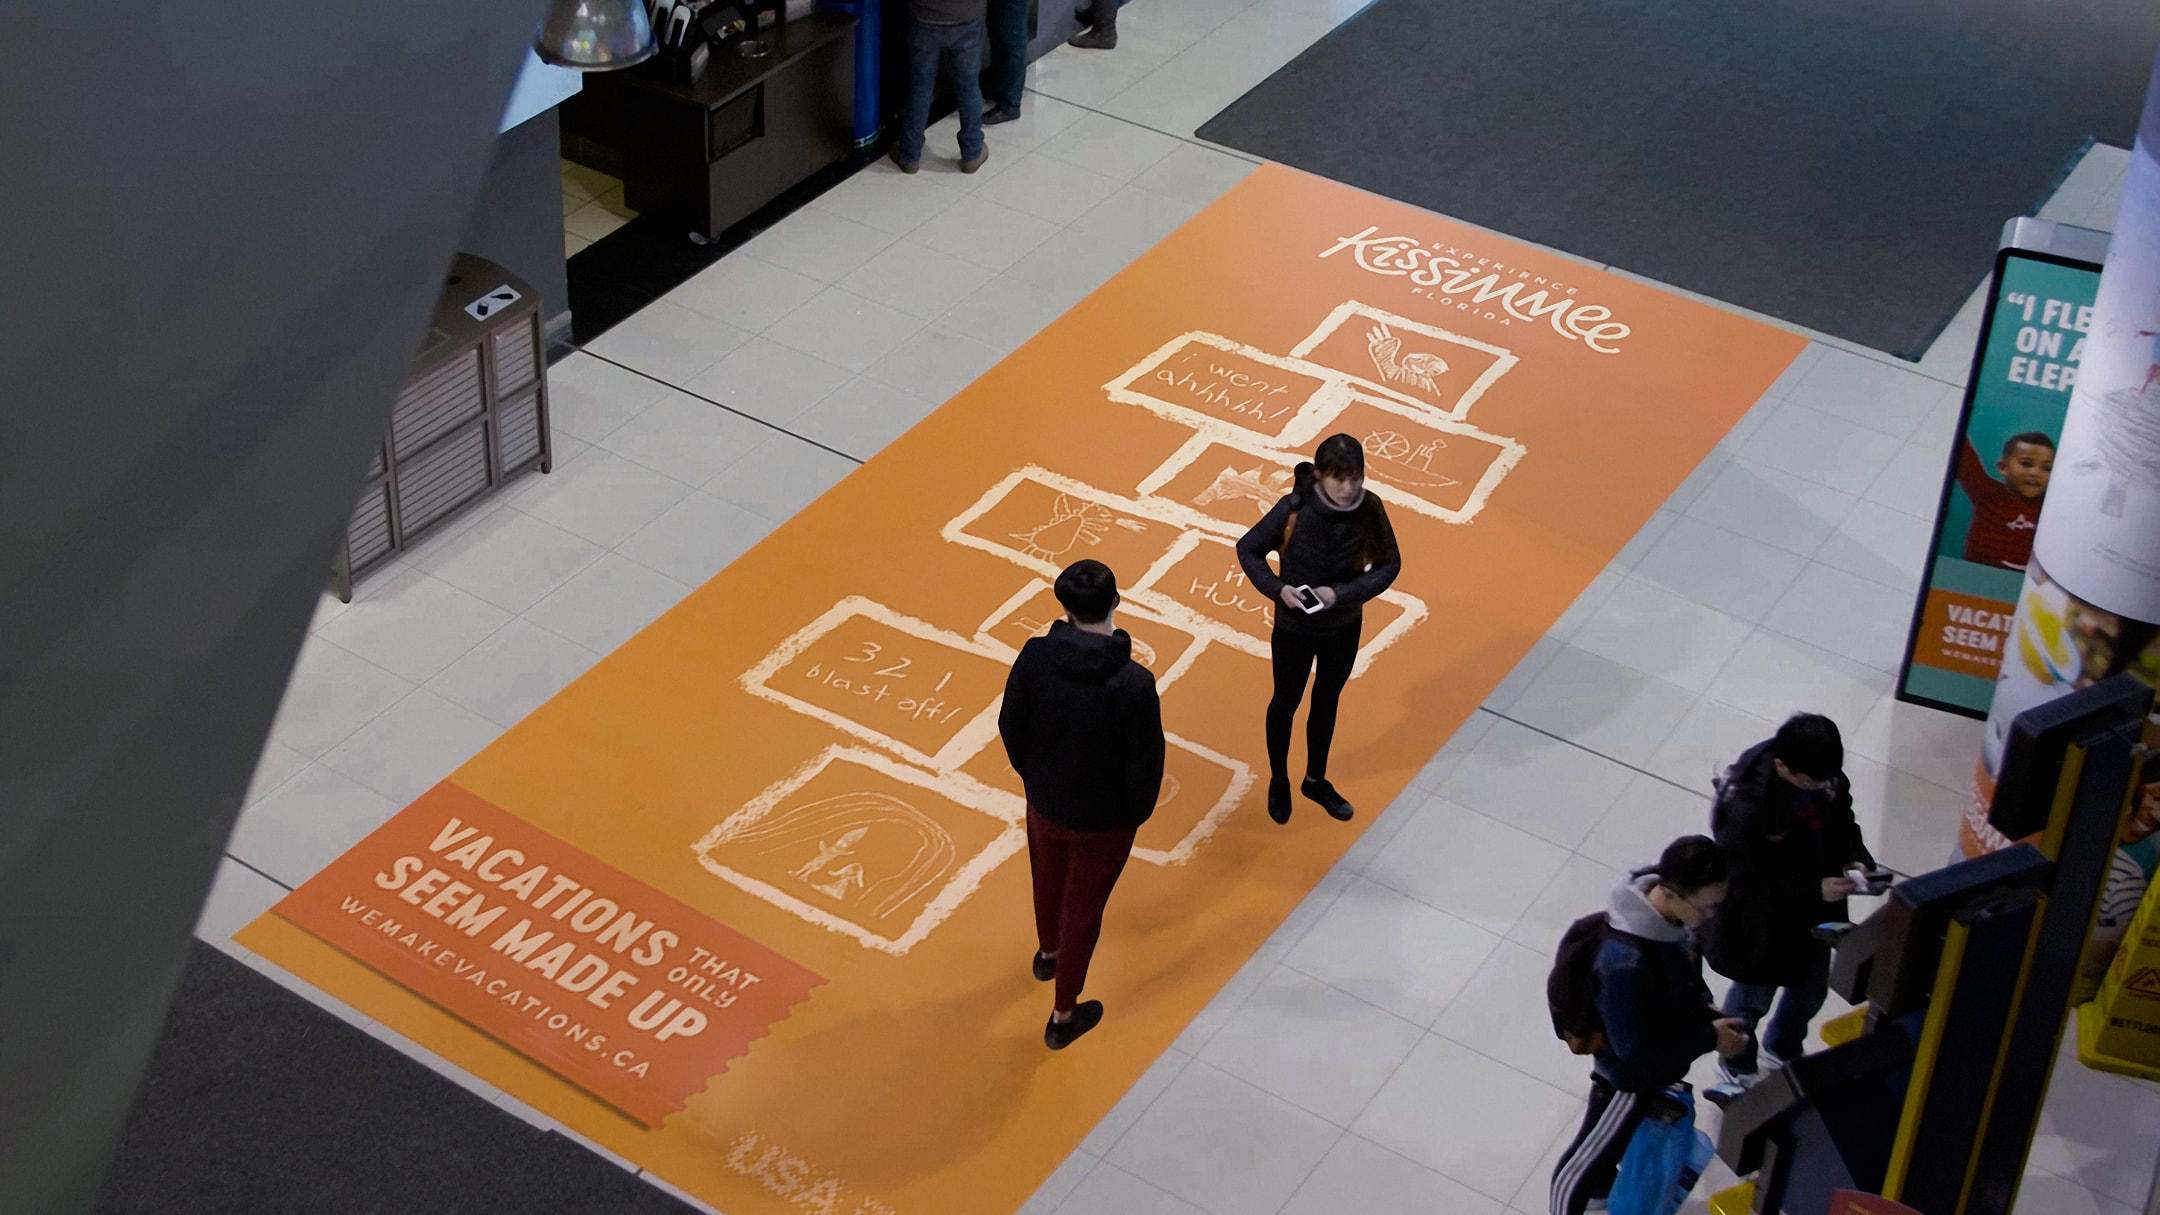 Experience Kissimmee hopscotch ad on mall floor.